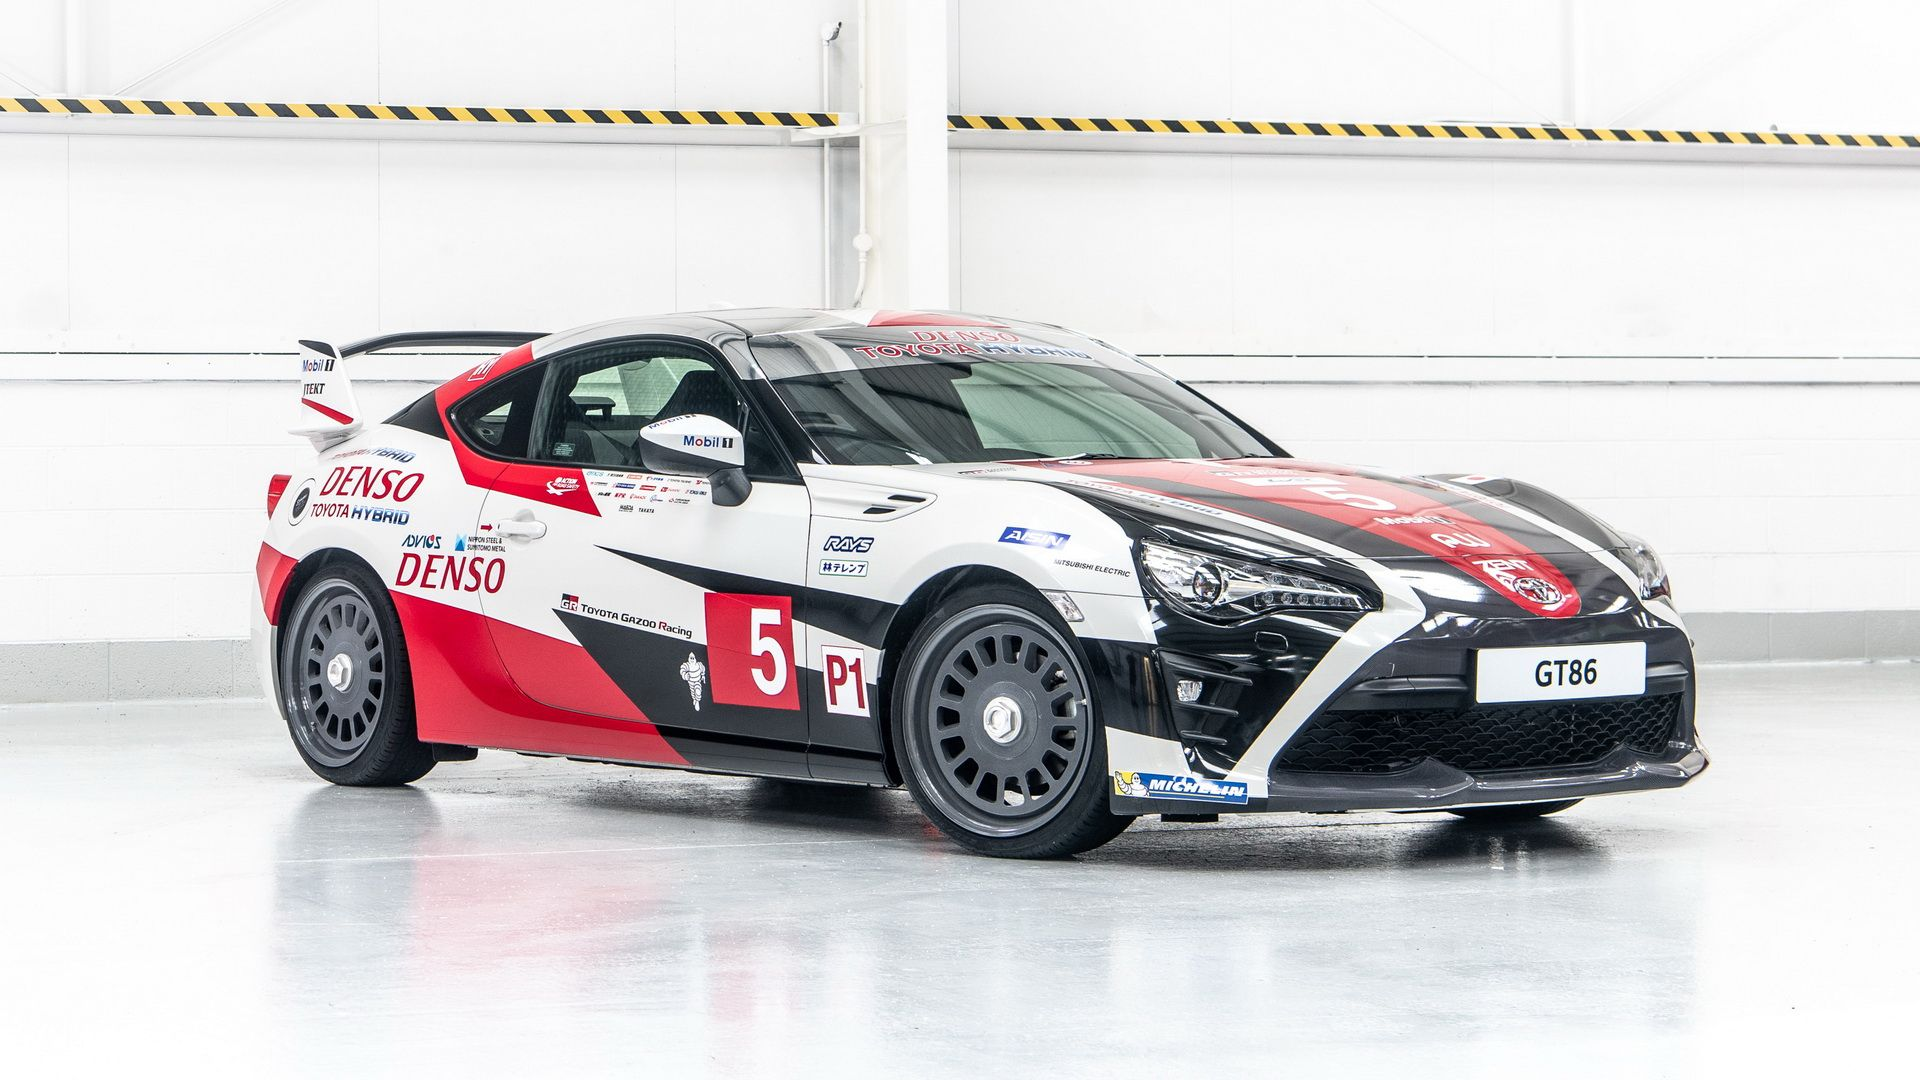 toyota-gt86-heritage-livery-24-hours-of-le-mans-2